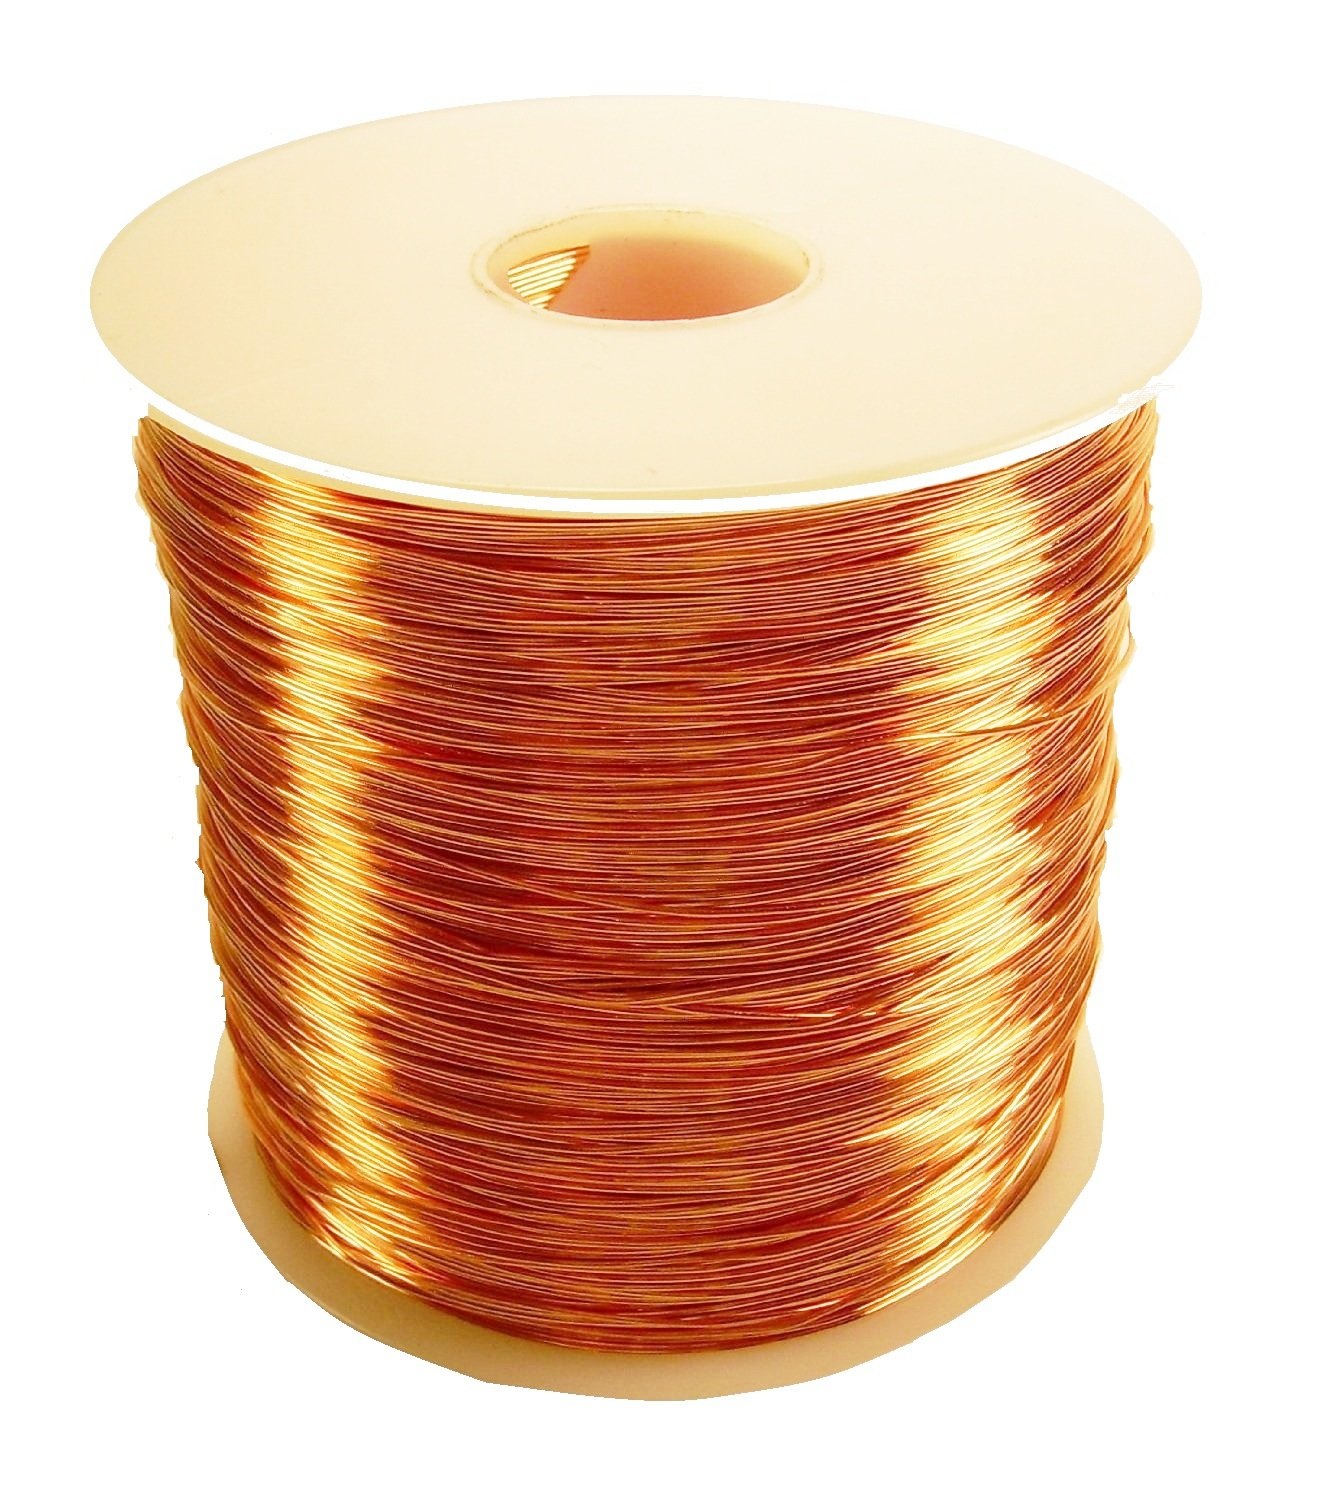 14 Ga Solid Copper Wire (5 Lb. - 400 Ft.) Soft by Copper Wire USA